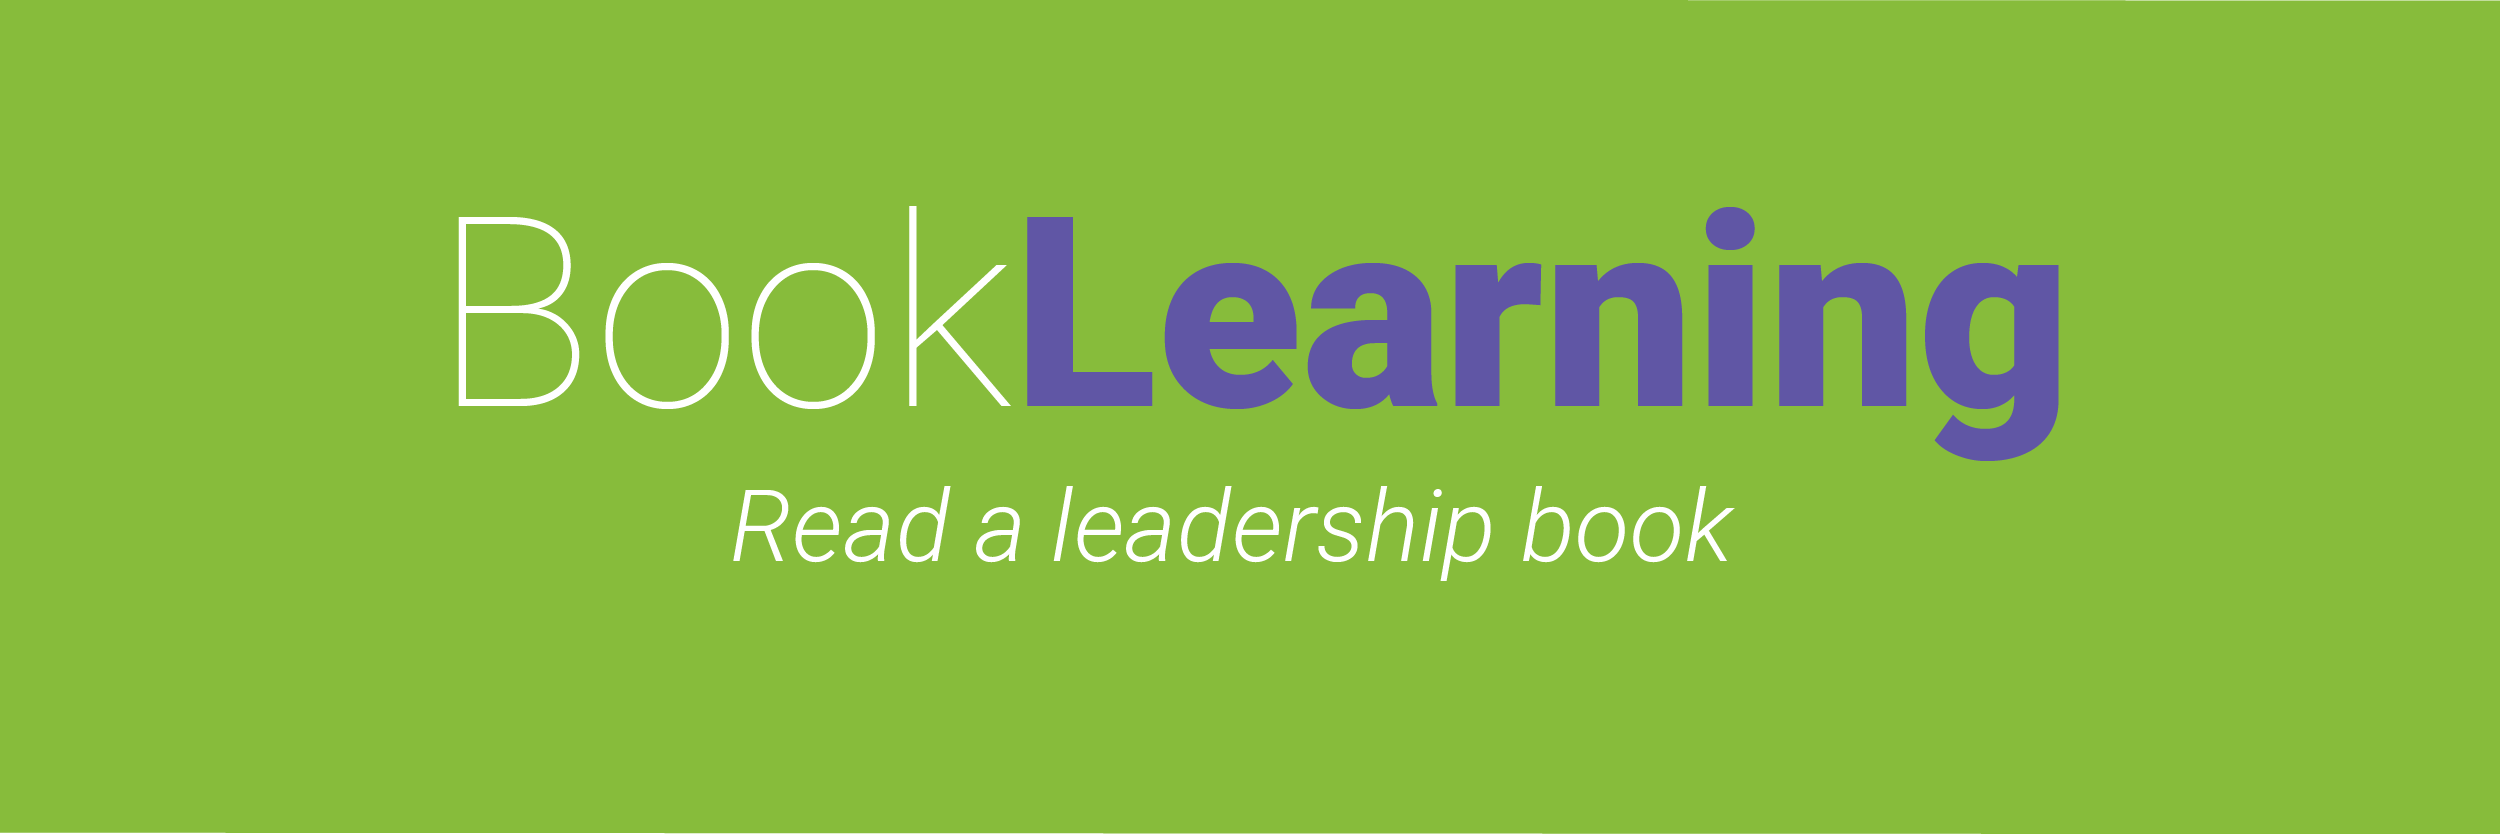 Book Learning-01